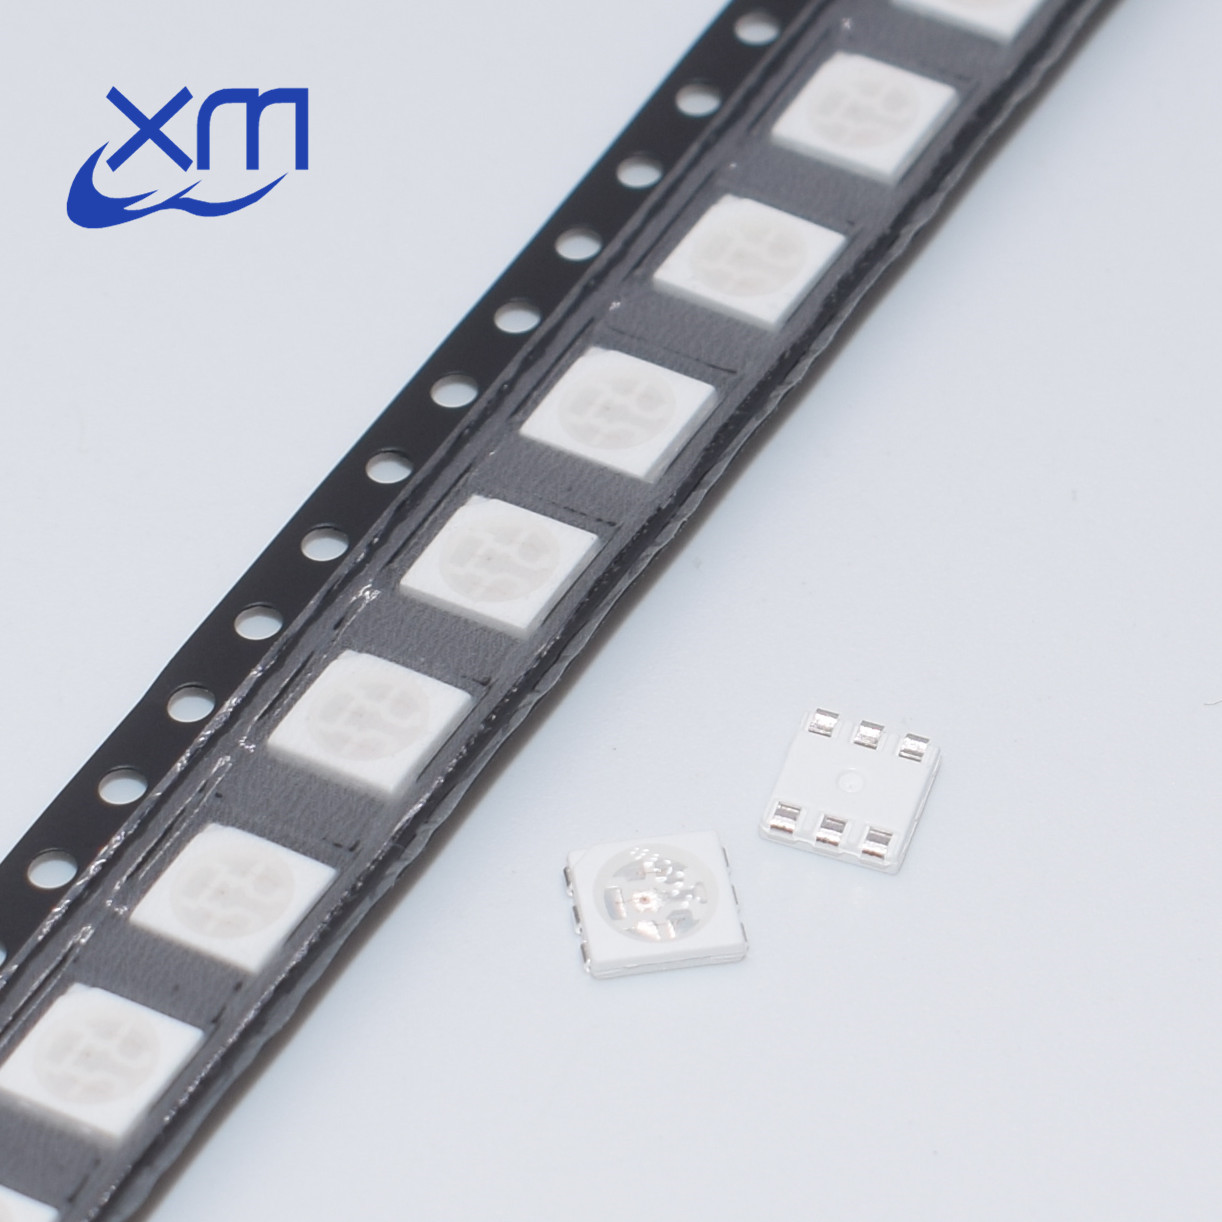 8 popular most get top led light 3 free smd near me and YvIfb76gy